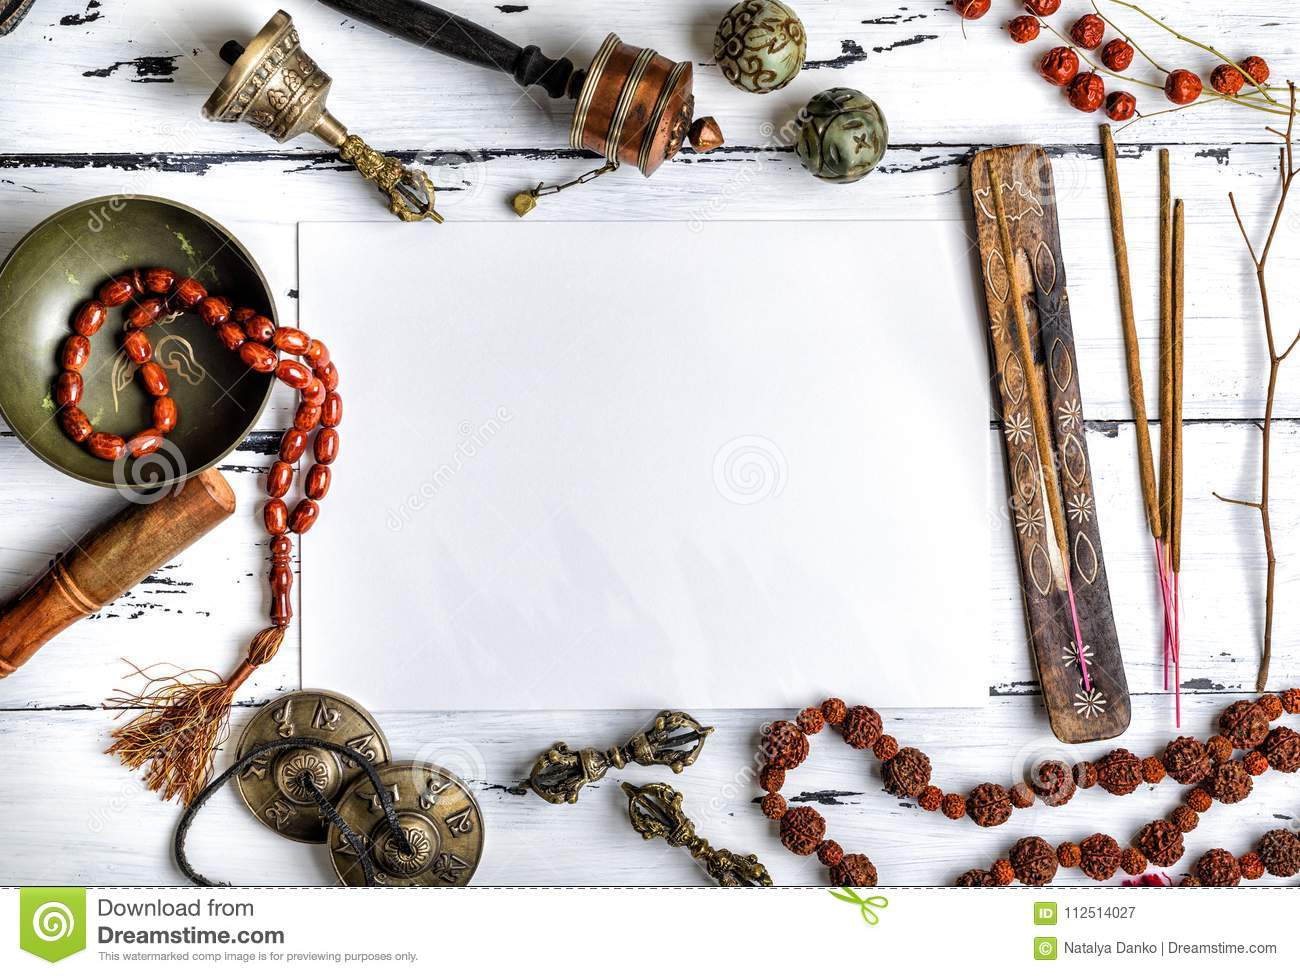 Religious musical instruments for meditation and alternative med